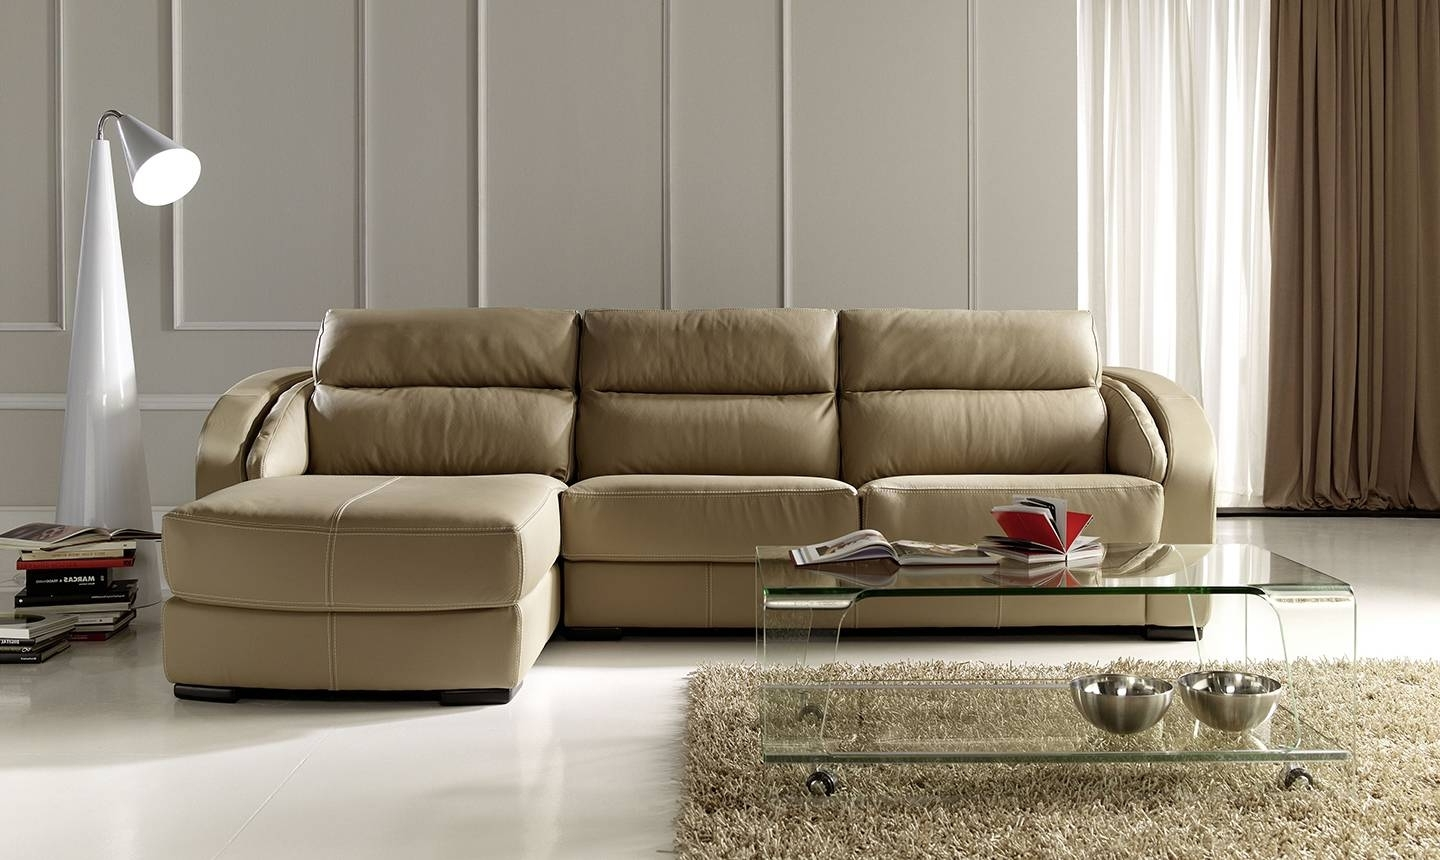 Well-known Modern Style Apartment Size Leather Sectional Sofa And Exquisite with regard to Virginia Beach Sectional Sofas